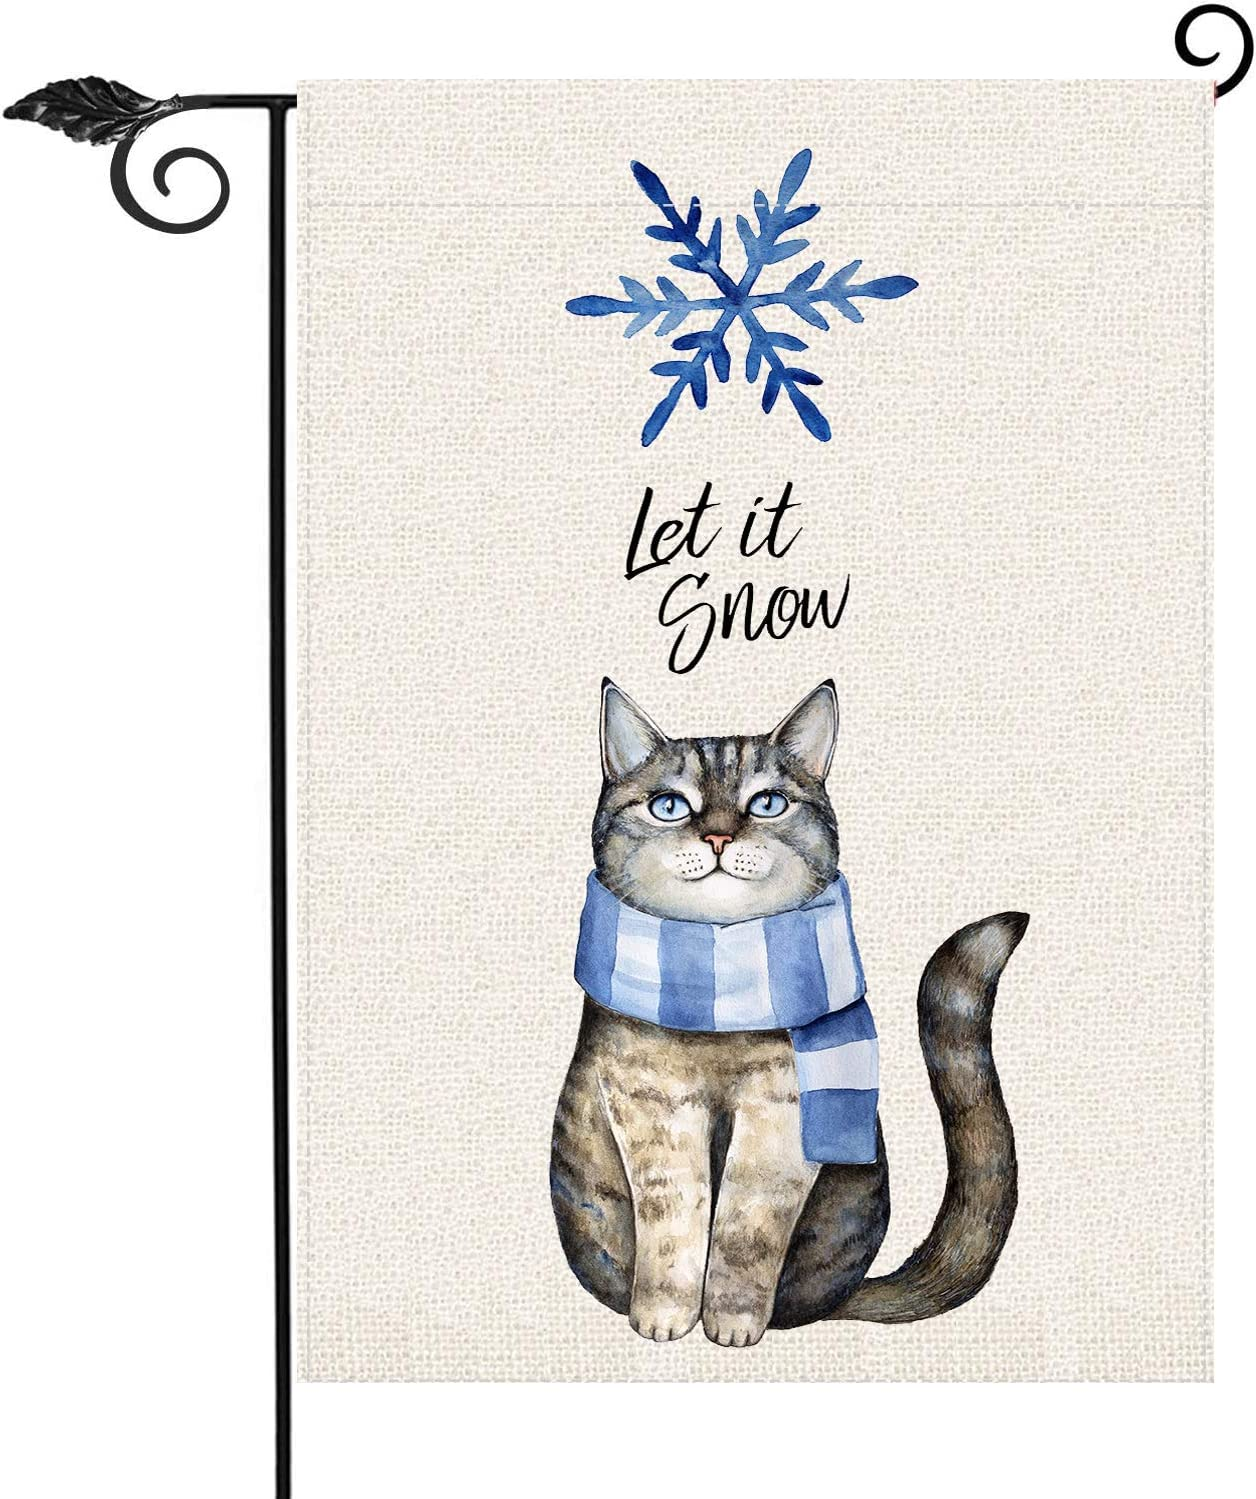 Winter Cat Let It Snow Garden Flag Vertical Double Sided 12.5 x 18 Inch Farmhouse Christmas Winter Holiday Burlap Yard Outdoor Decor,Winter Yard Garden Welcome Sign